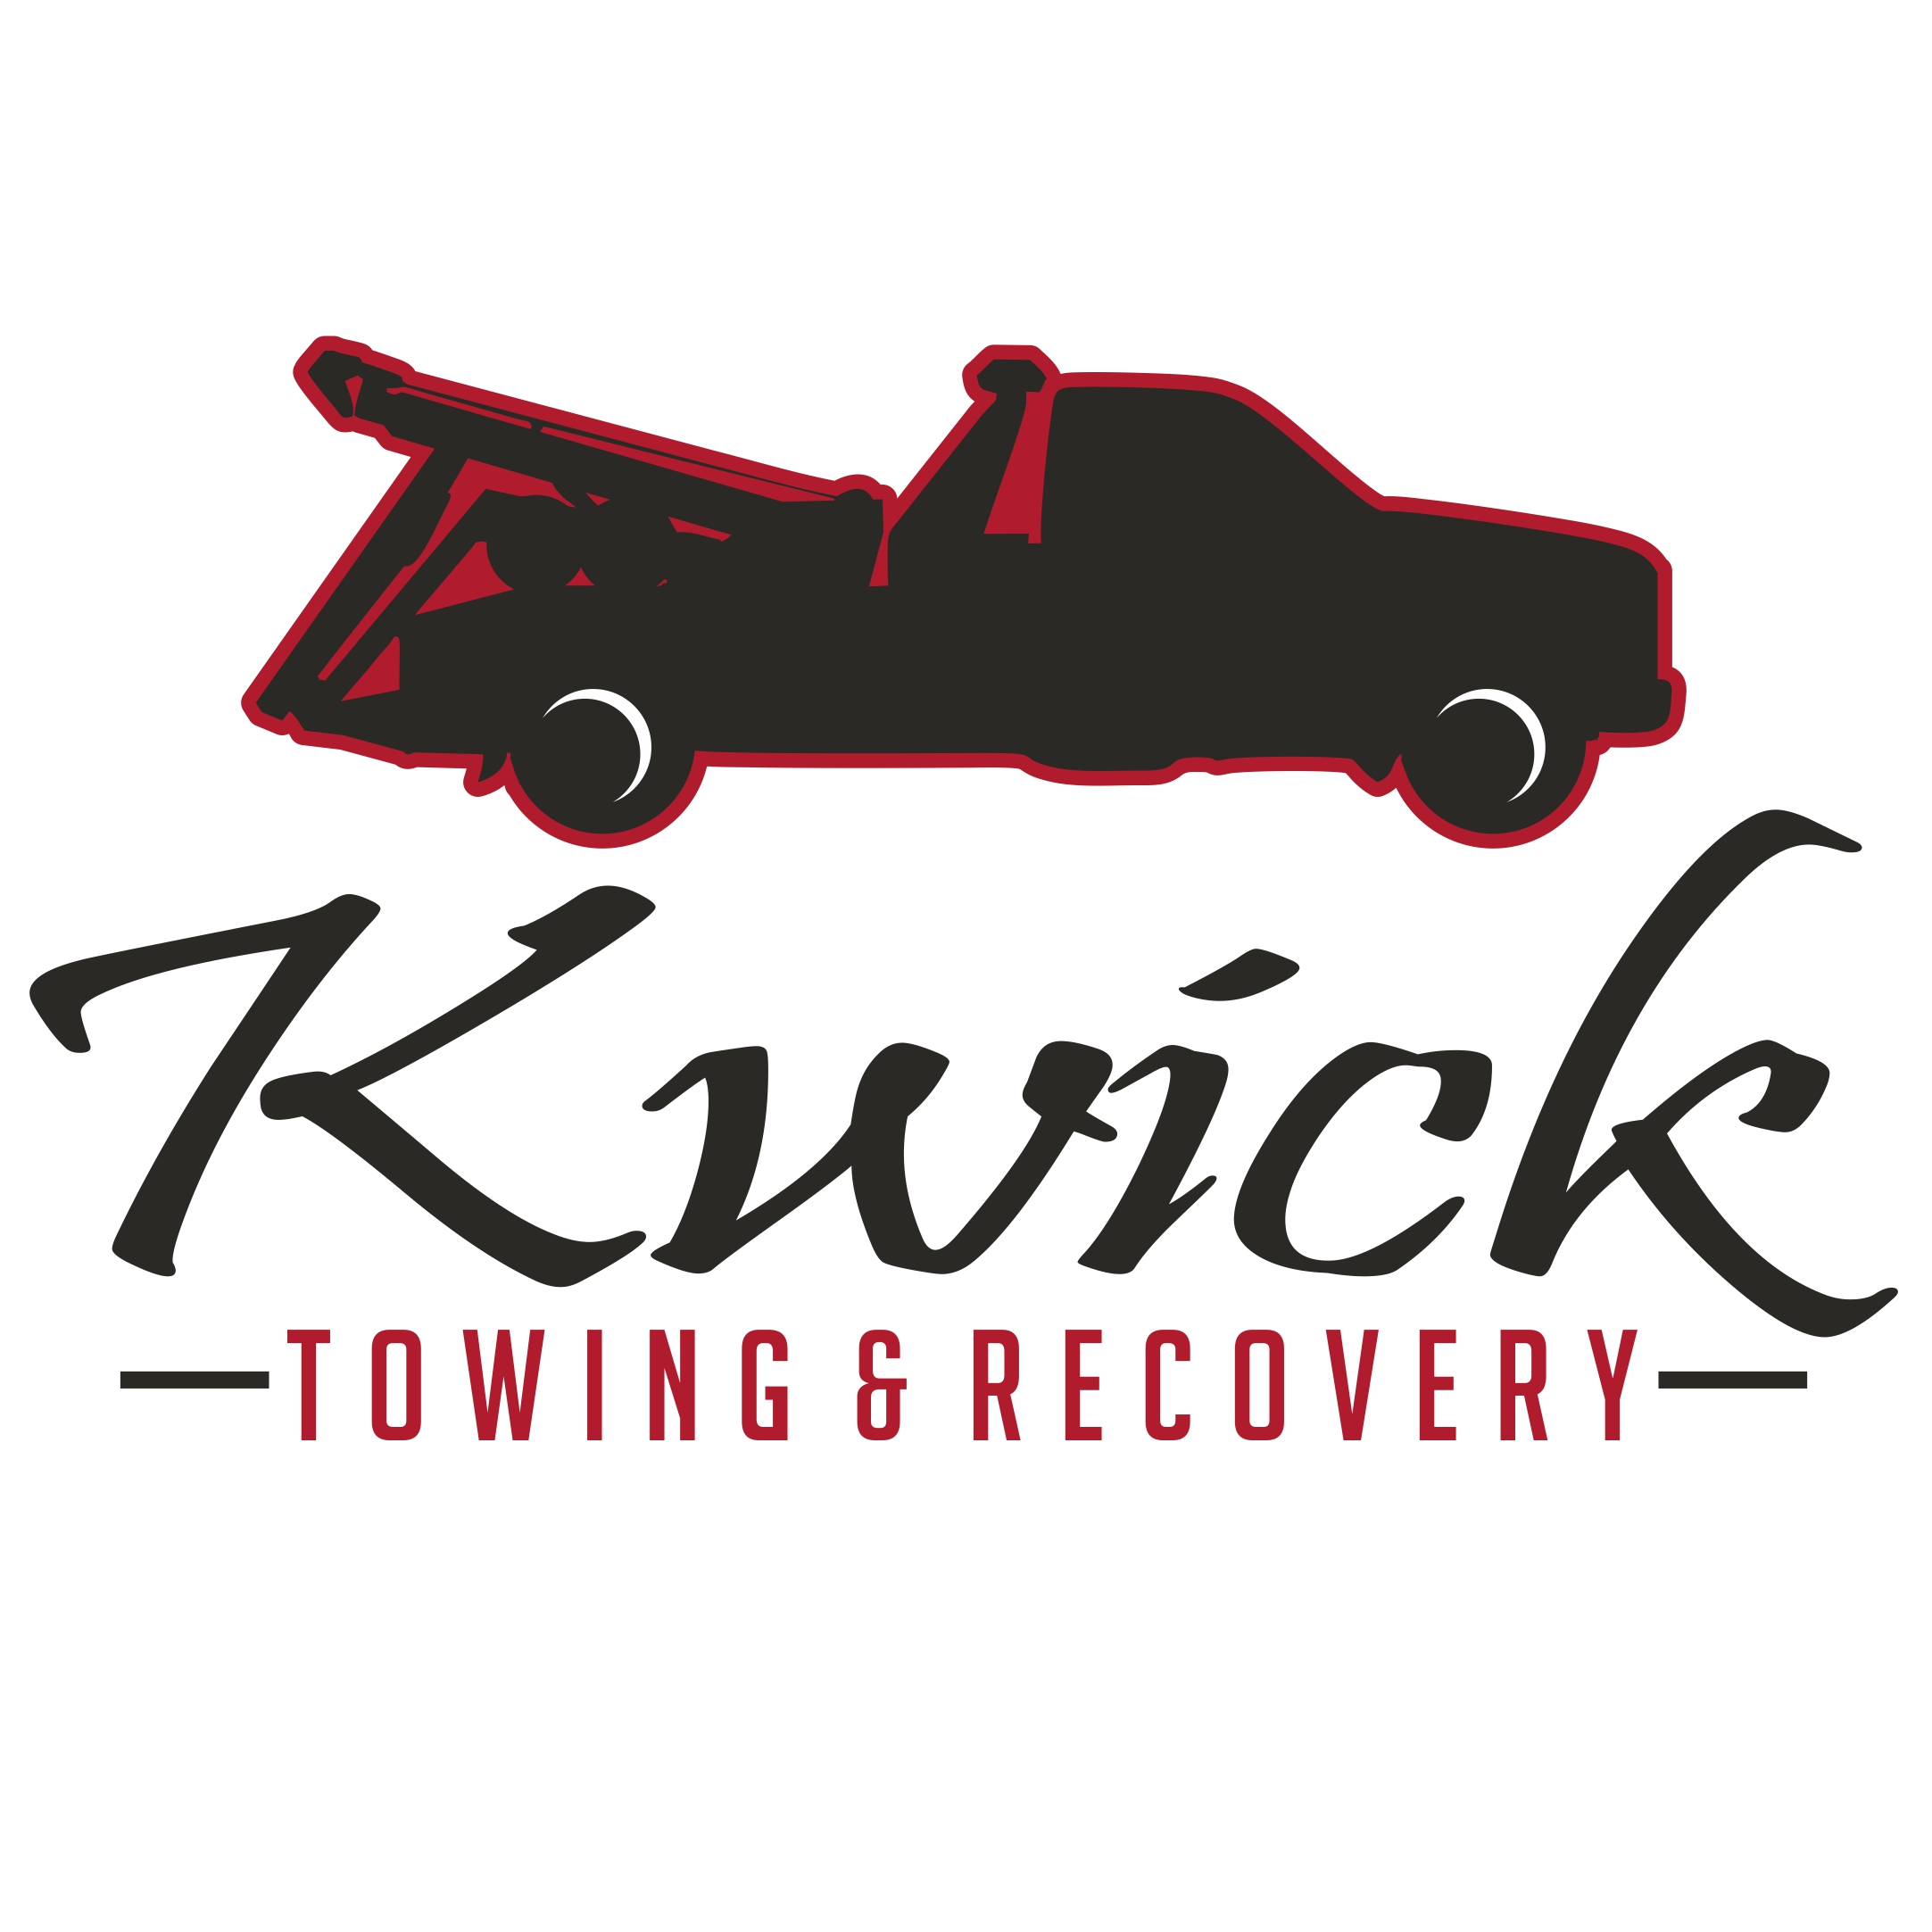 Kwick Towing & Recovery logo